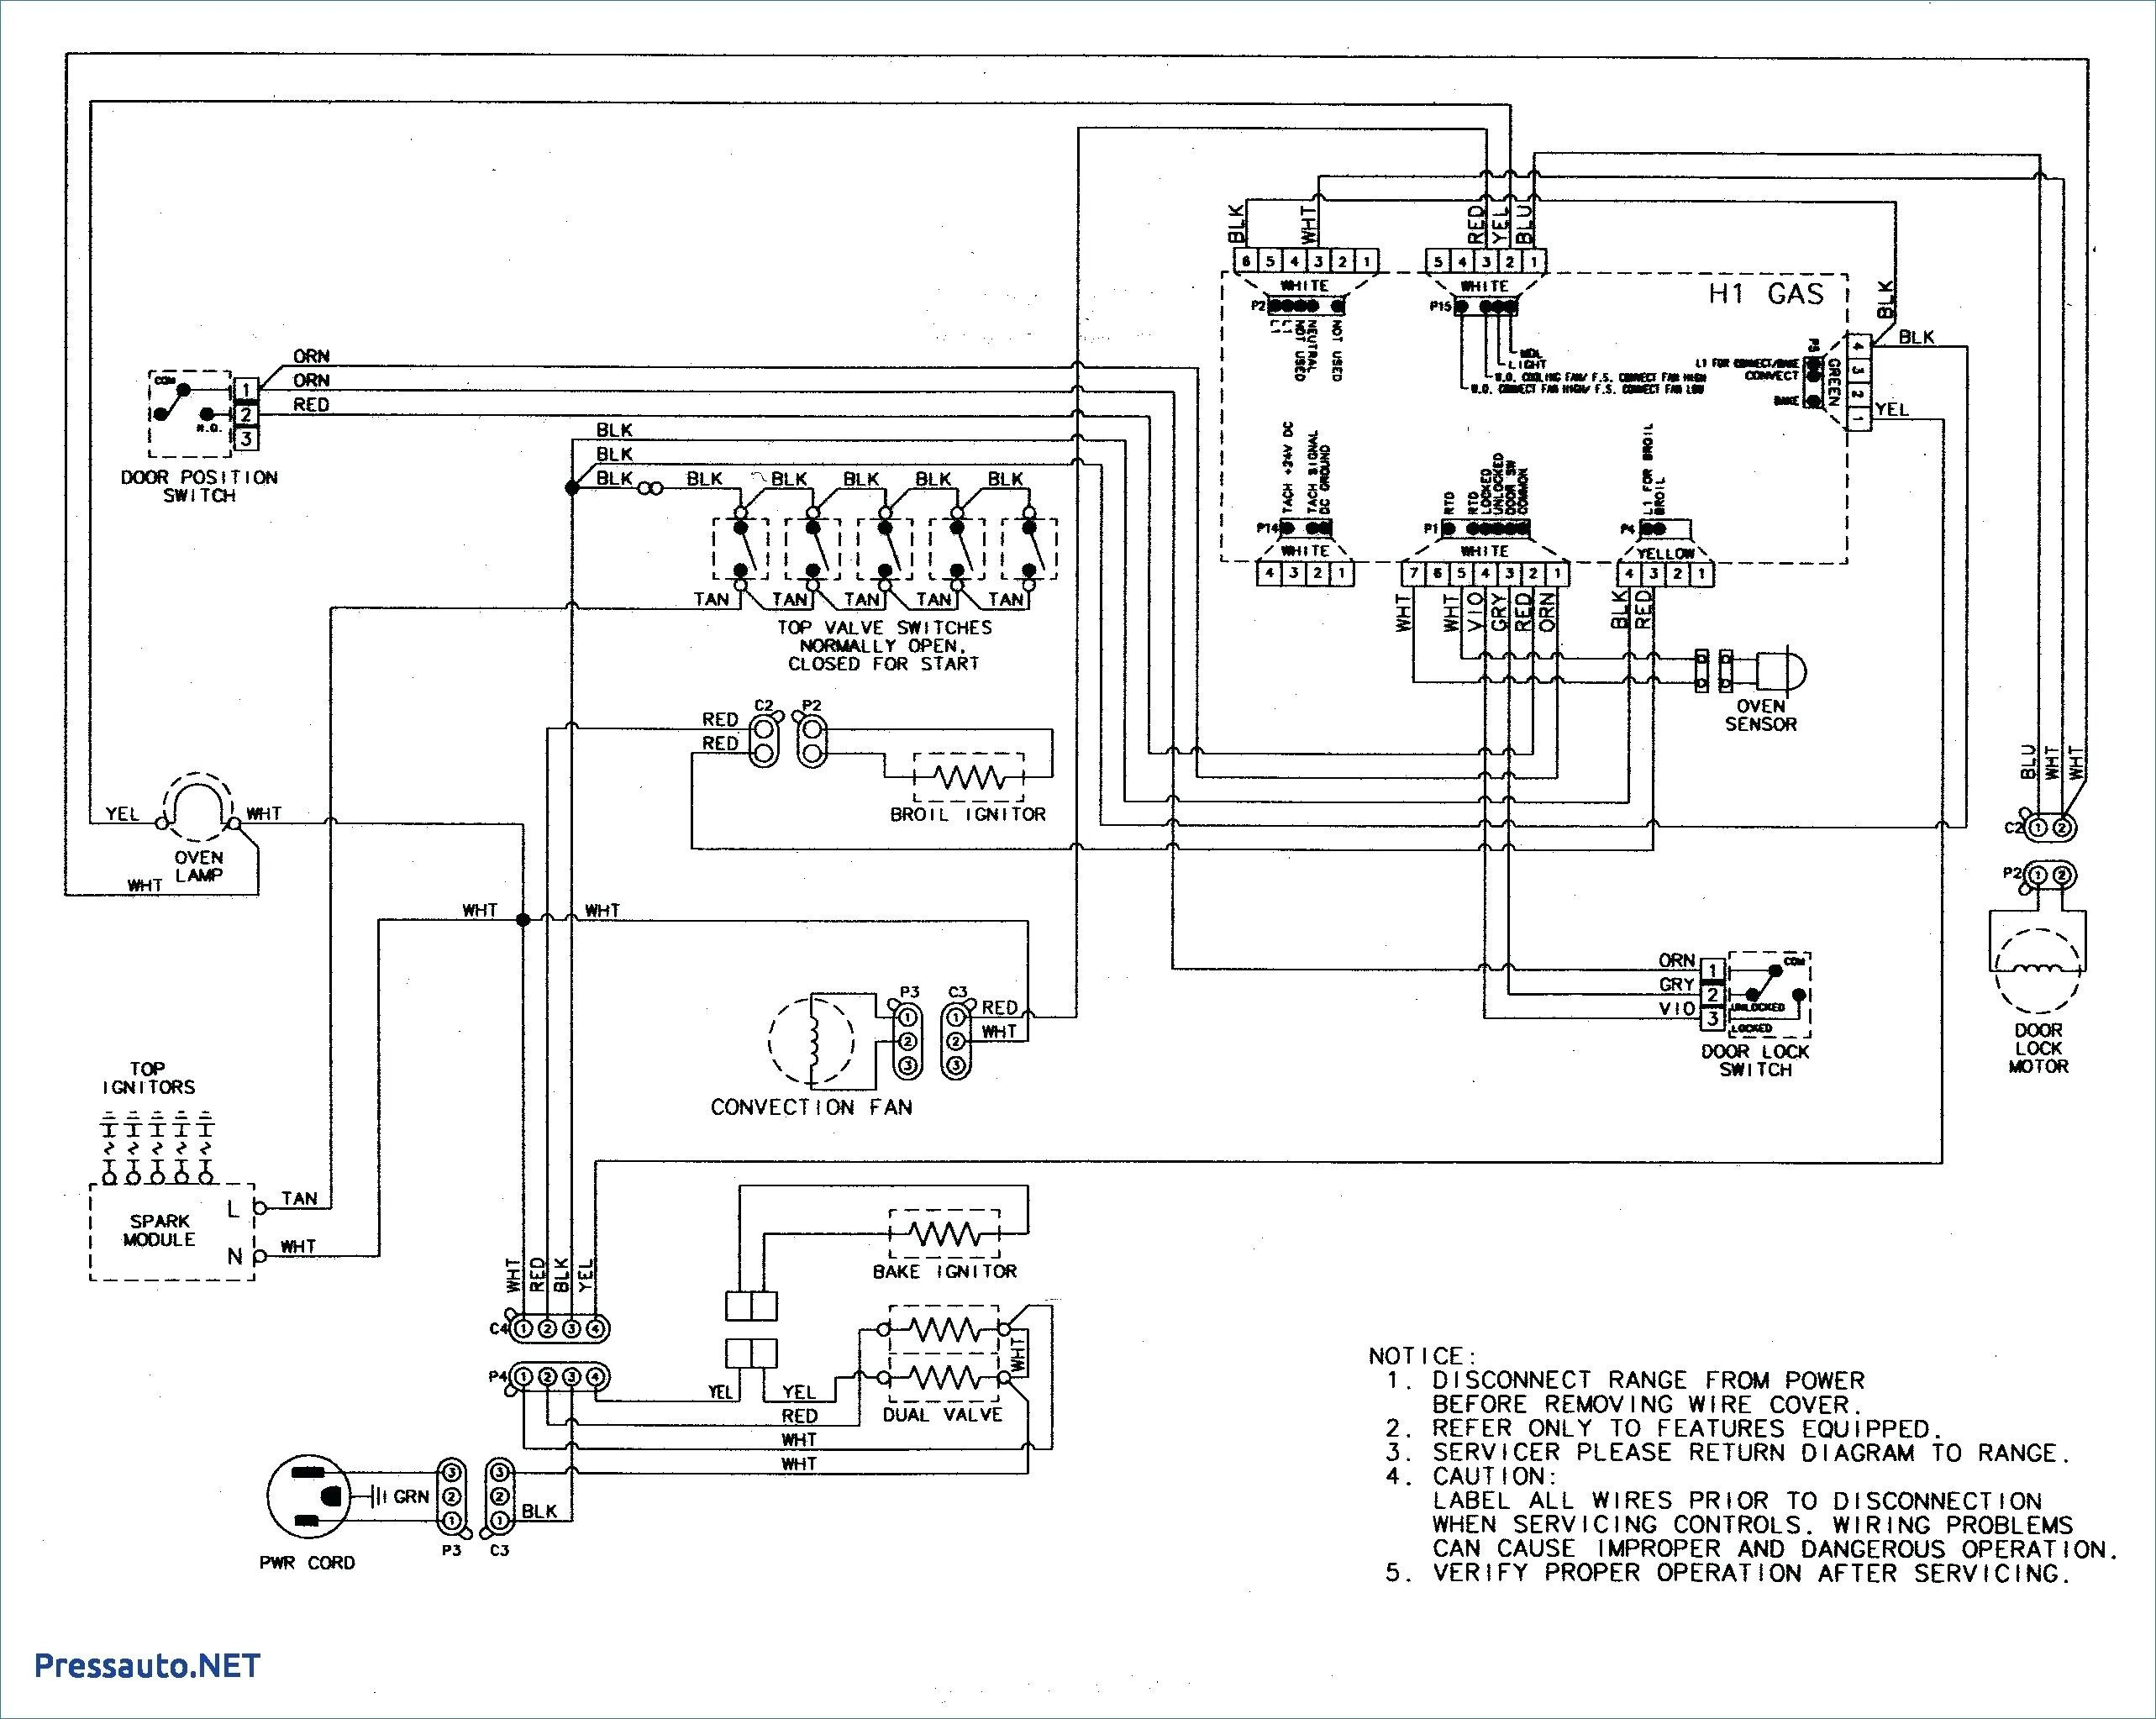 Automobile ac system diagram car diagram car air conditioning system automobile ac system diagram car diagram car diagram wiring for auto air conditioning new pdf of asfbconference2016 Images